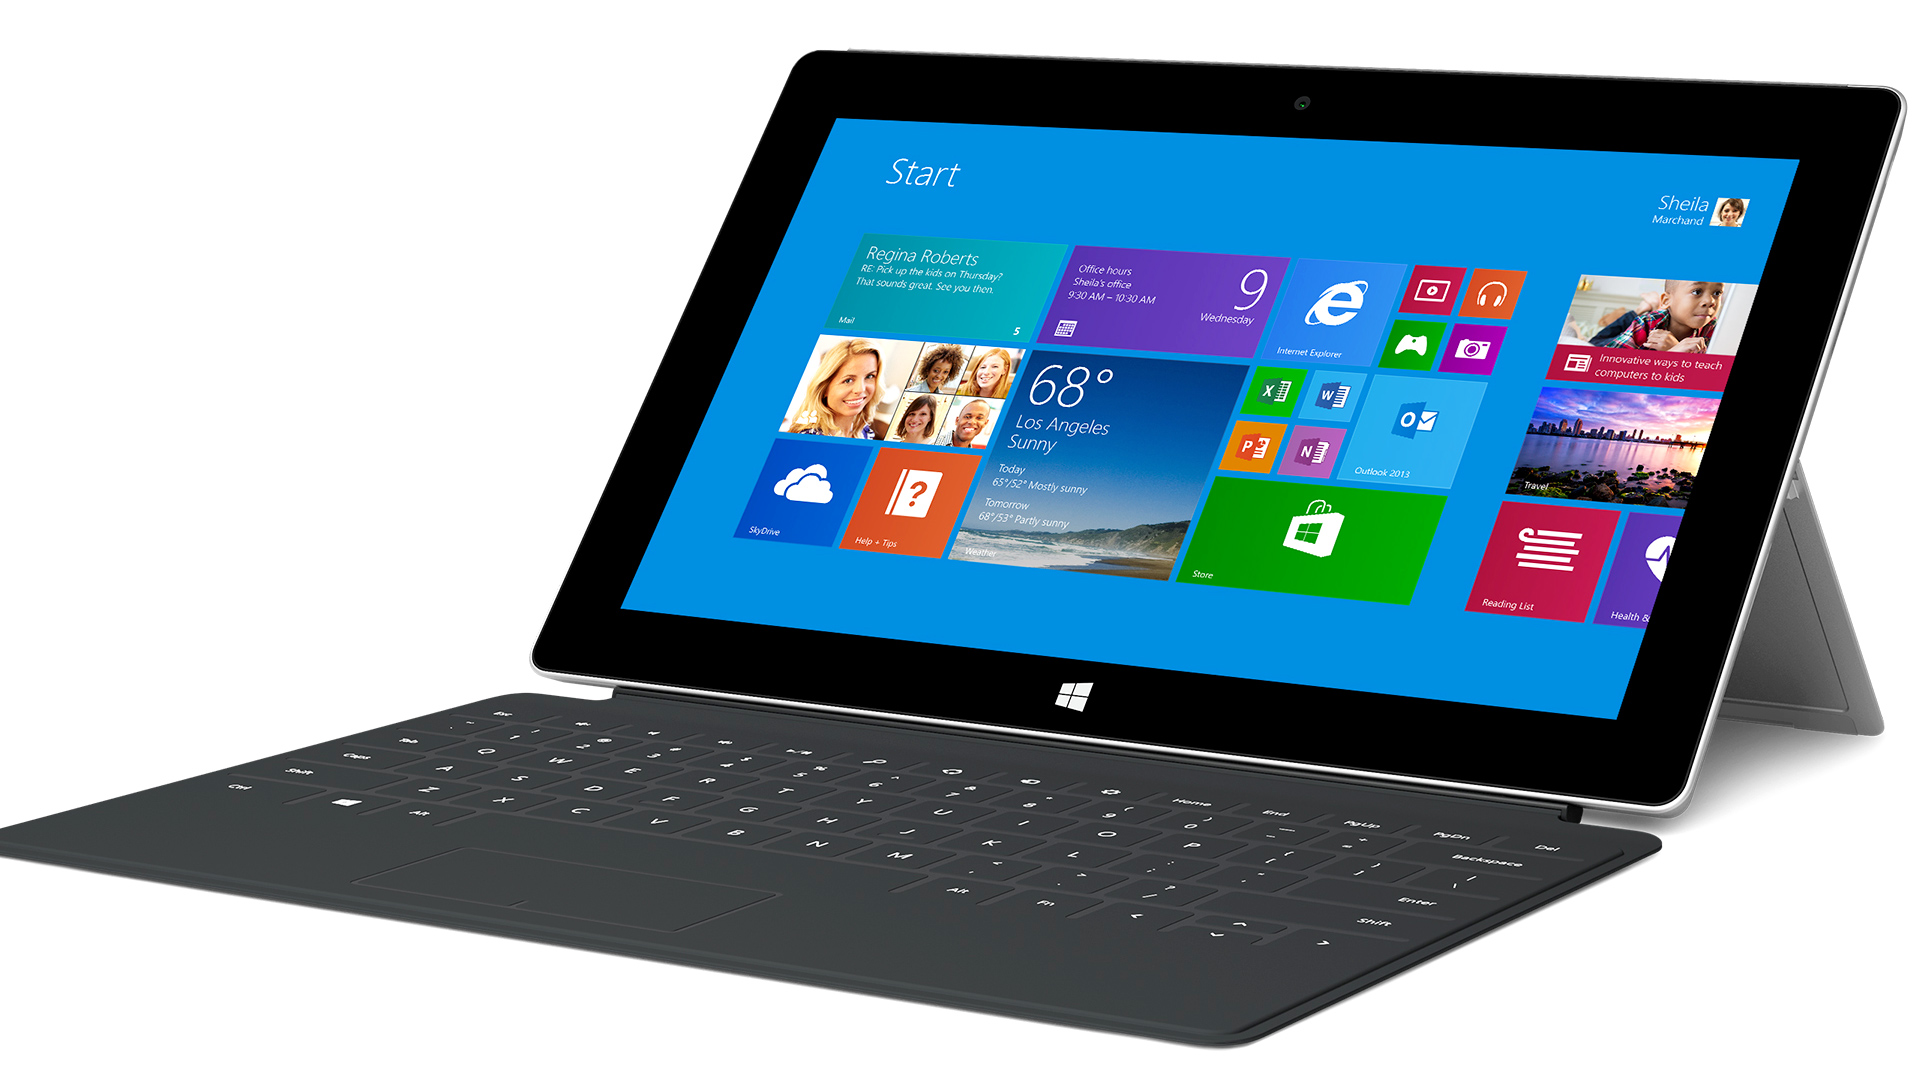 Why Microsoft Won't Give Up On The Surface | Fast Company | Business + Innovation